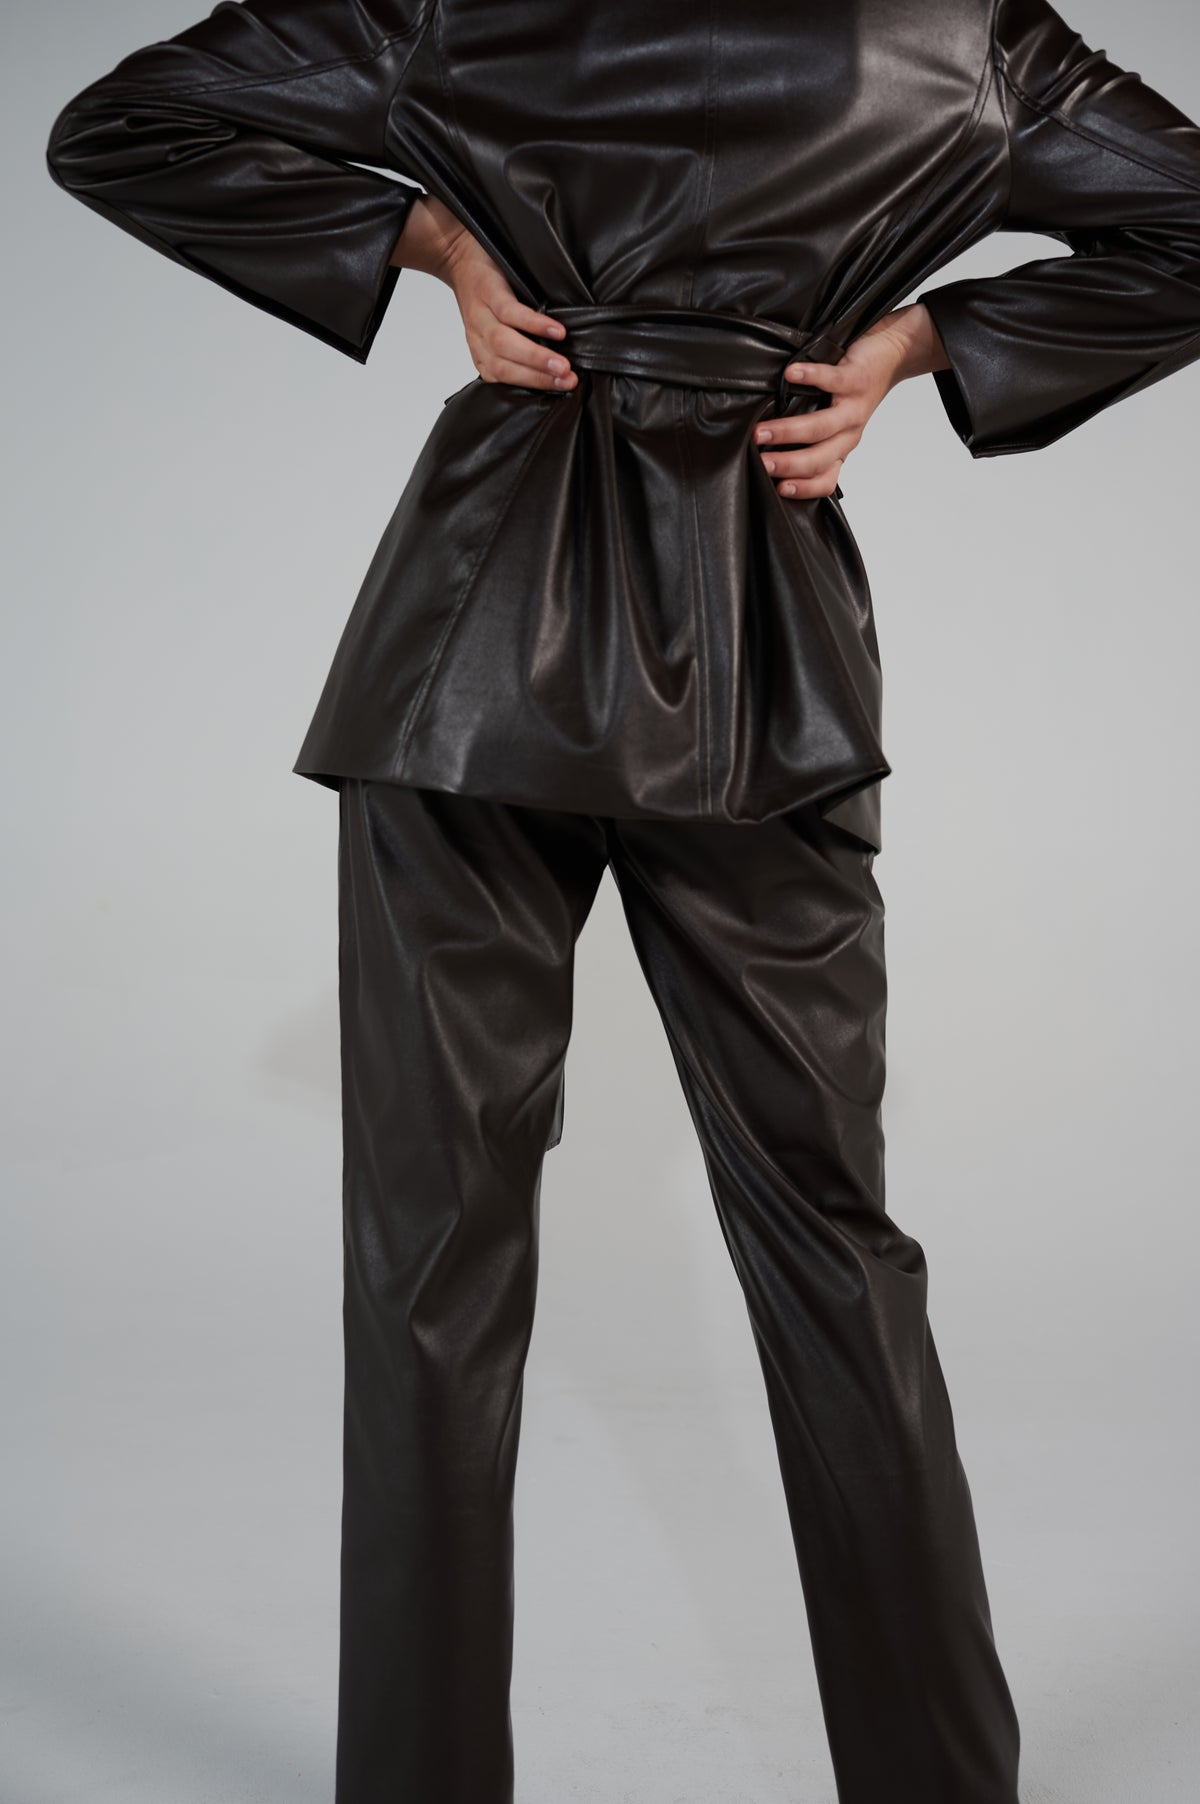 eco-leather-pants-forest-brown-details-straight-cut-high-waist-le-slap.jpg